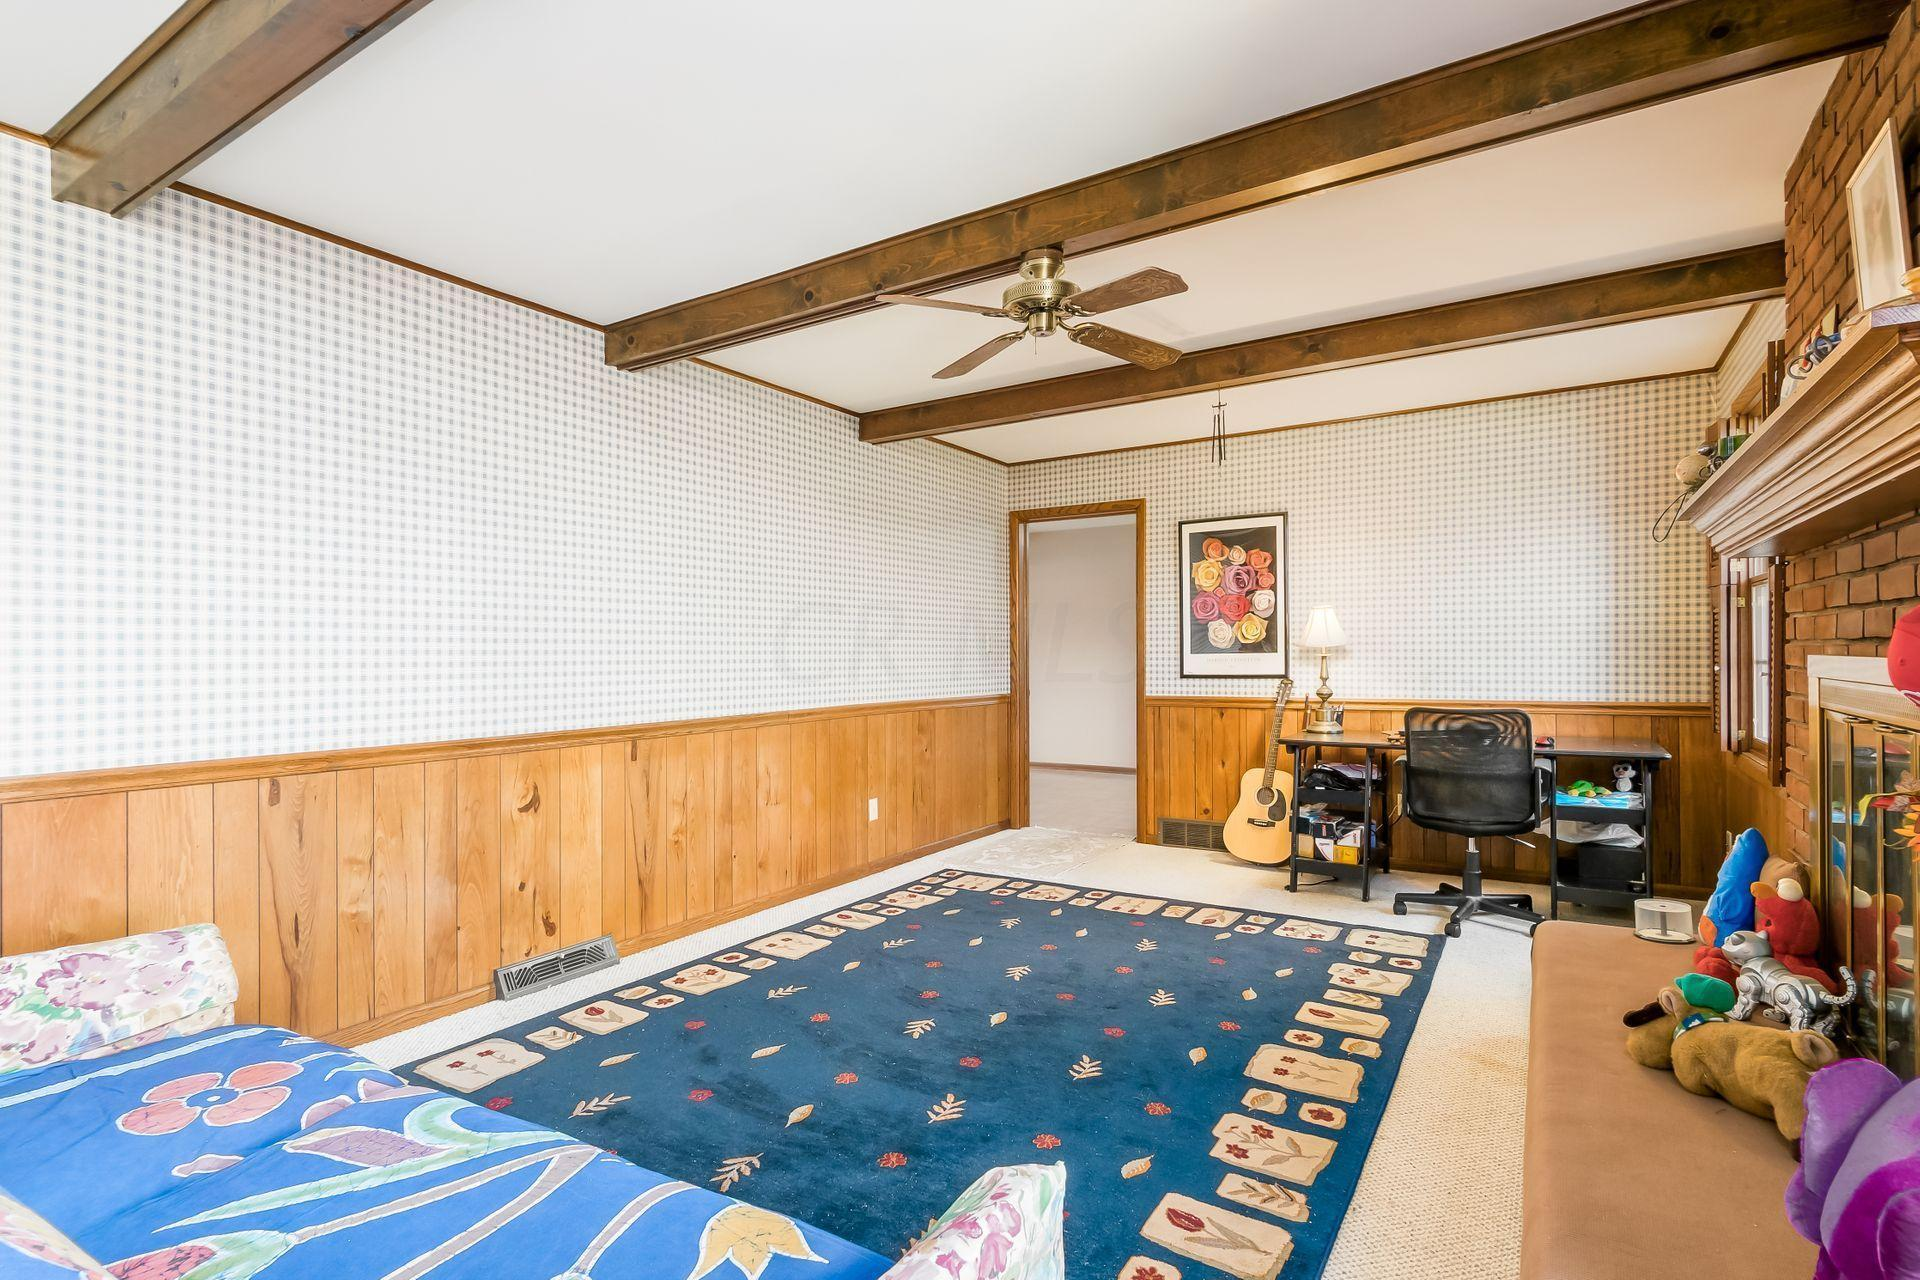 3977 Lytham Court, Columbus, Ohio 43220, 5 Bedrooms Bedrooms, ,4 BathroomsBathrooms,Residential,For Sale,Lytham,220039798